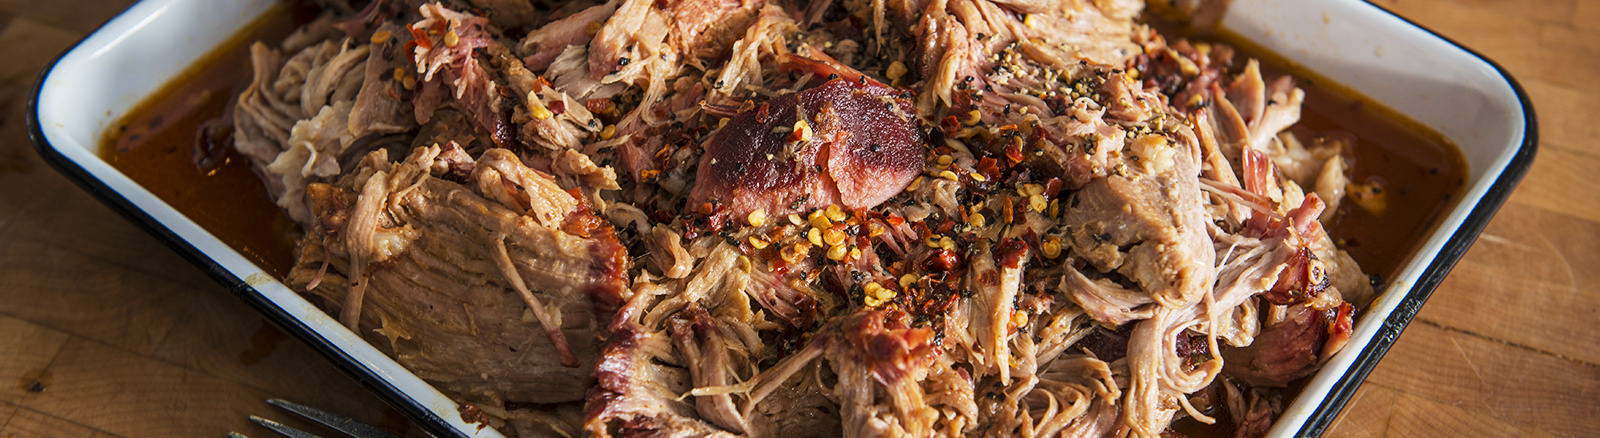 BBQ Pulled Pork with Paleo BBQ Sauce